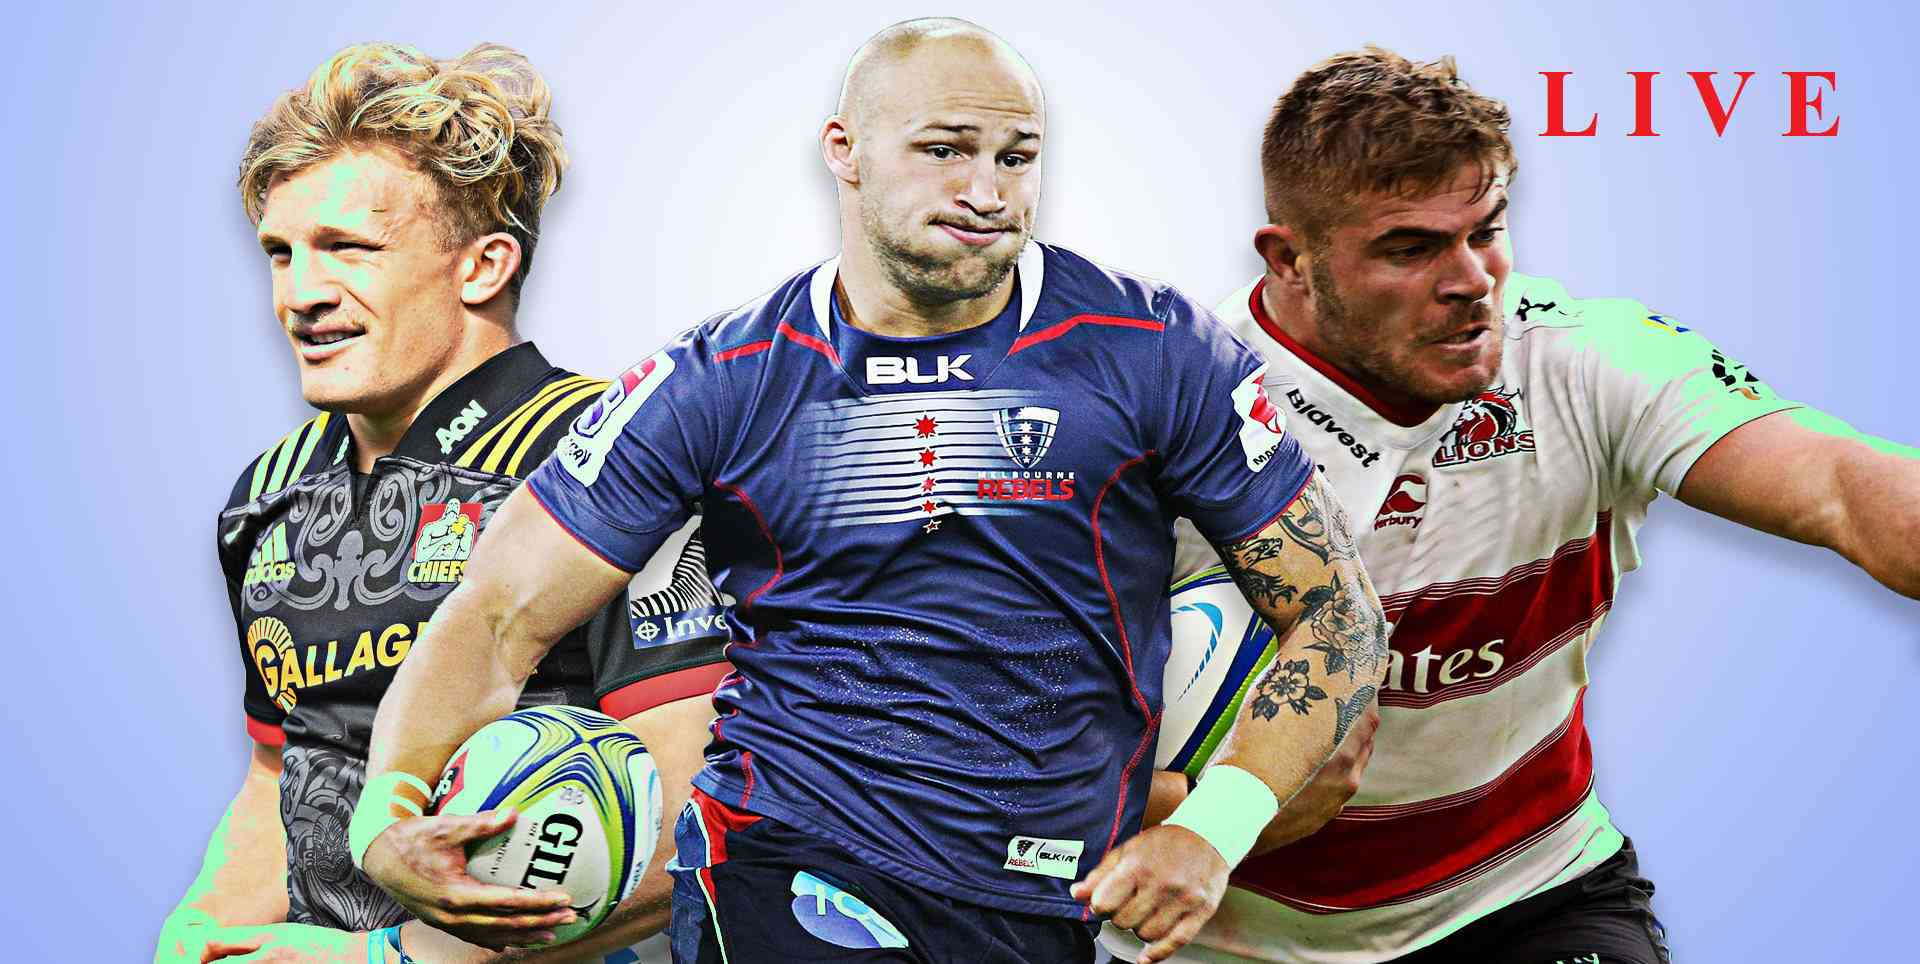 live-bulls-vs-crusaders-2018-online